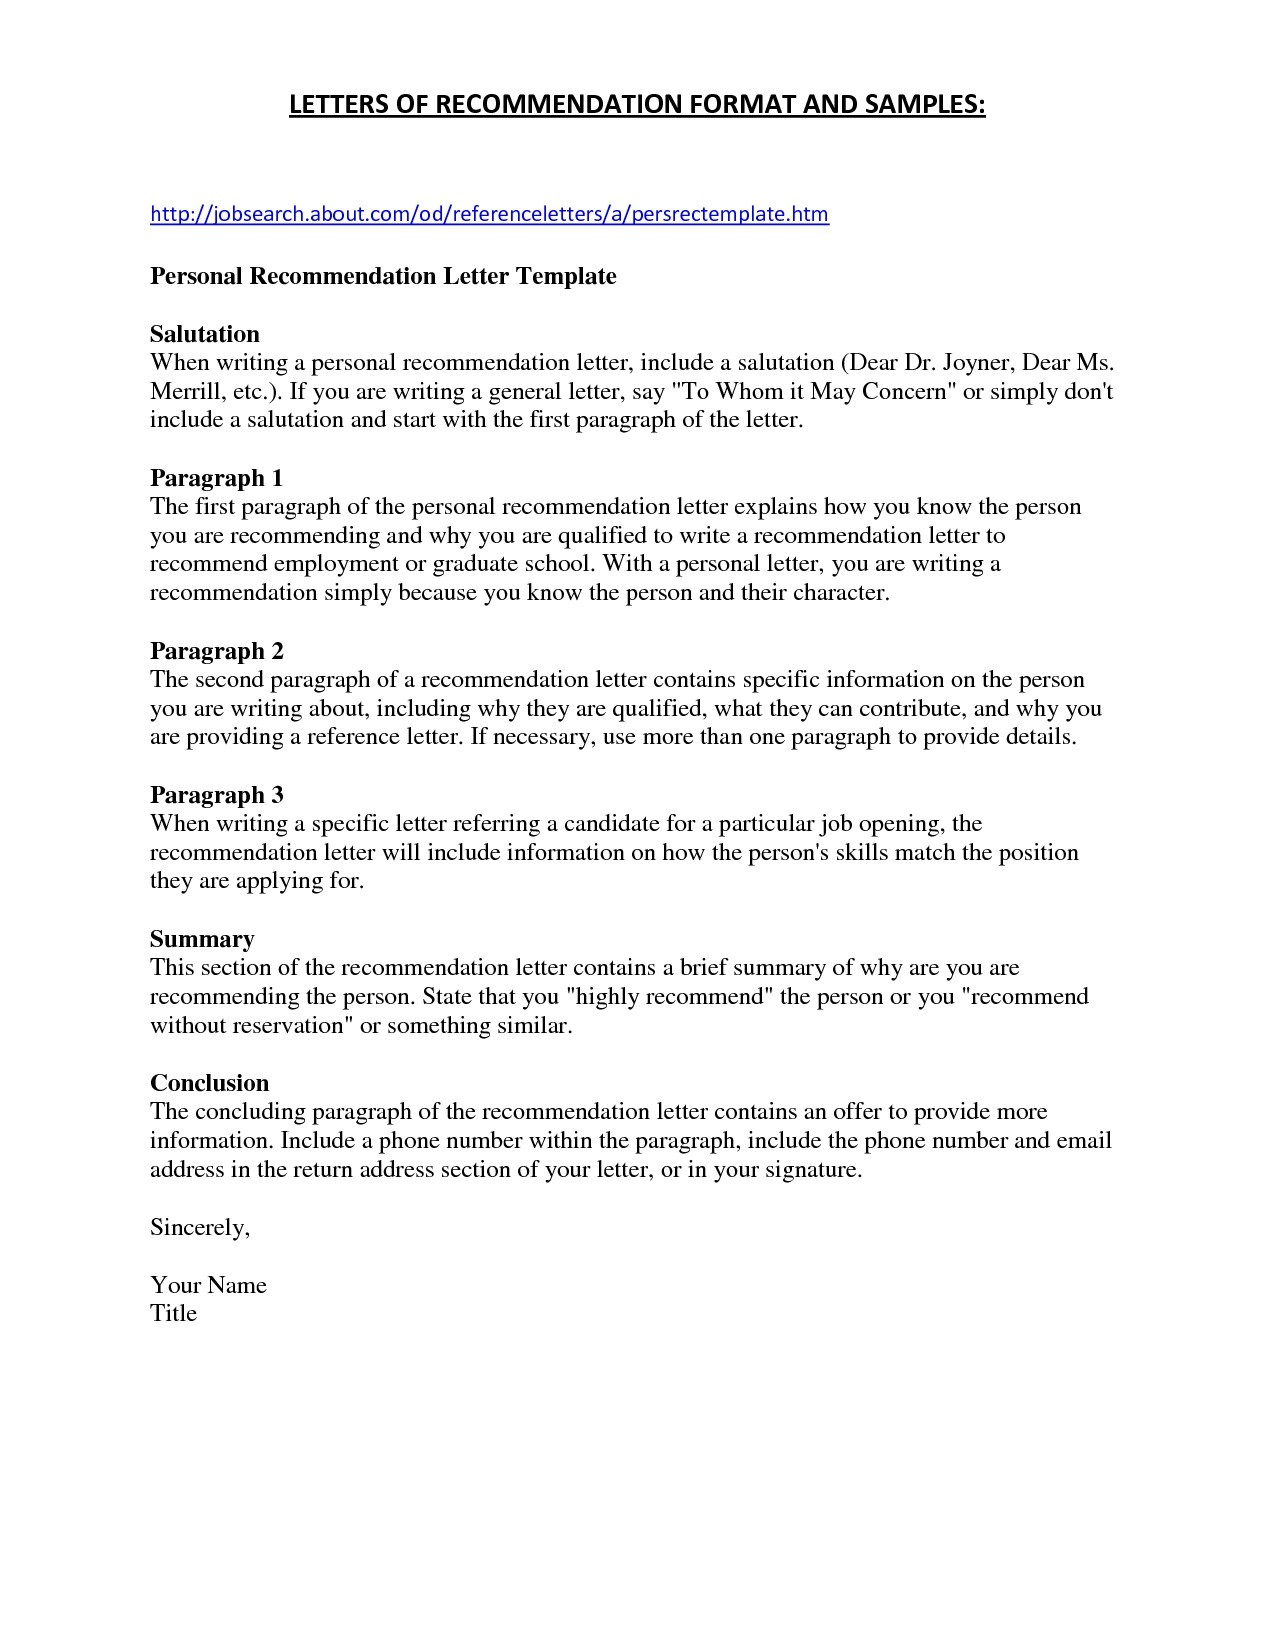 Grad School Letter Of Recommendation Template - Sample Job Re Mendation Letter for Employee New Letter Re